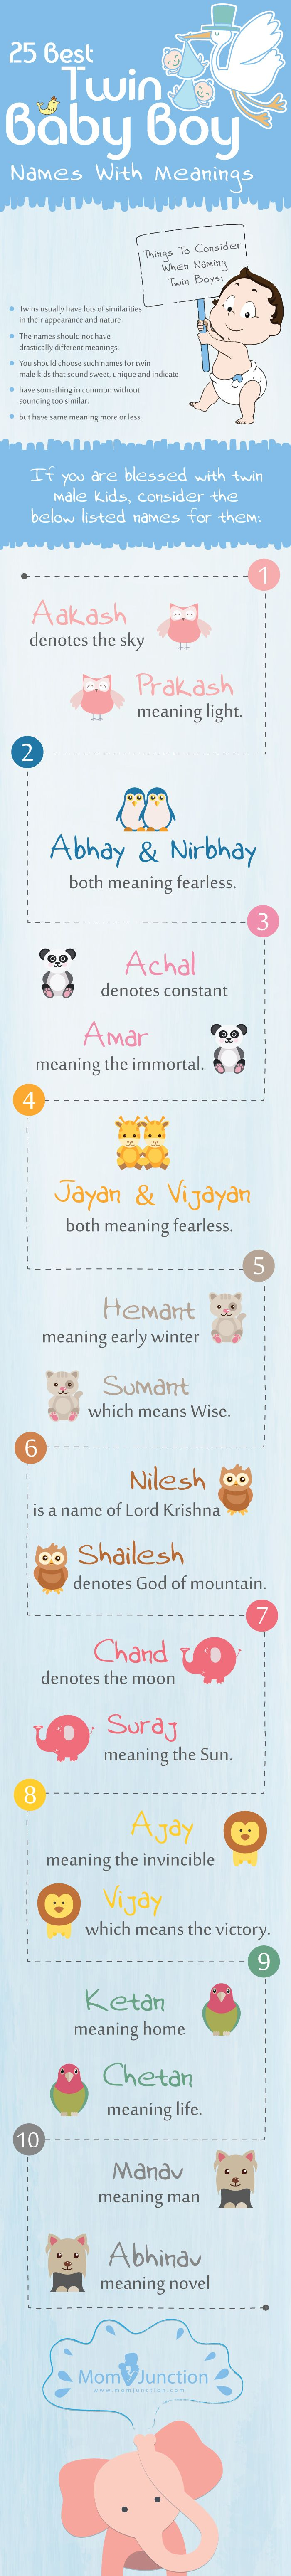 25 Best Twin Baby Boy Names With Meanings